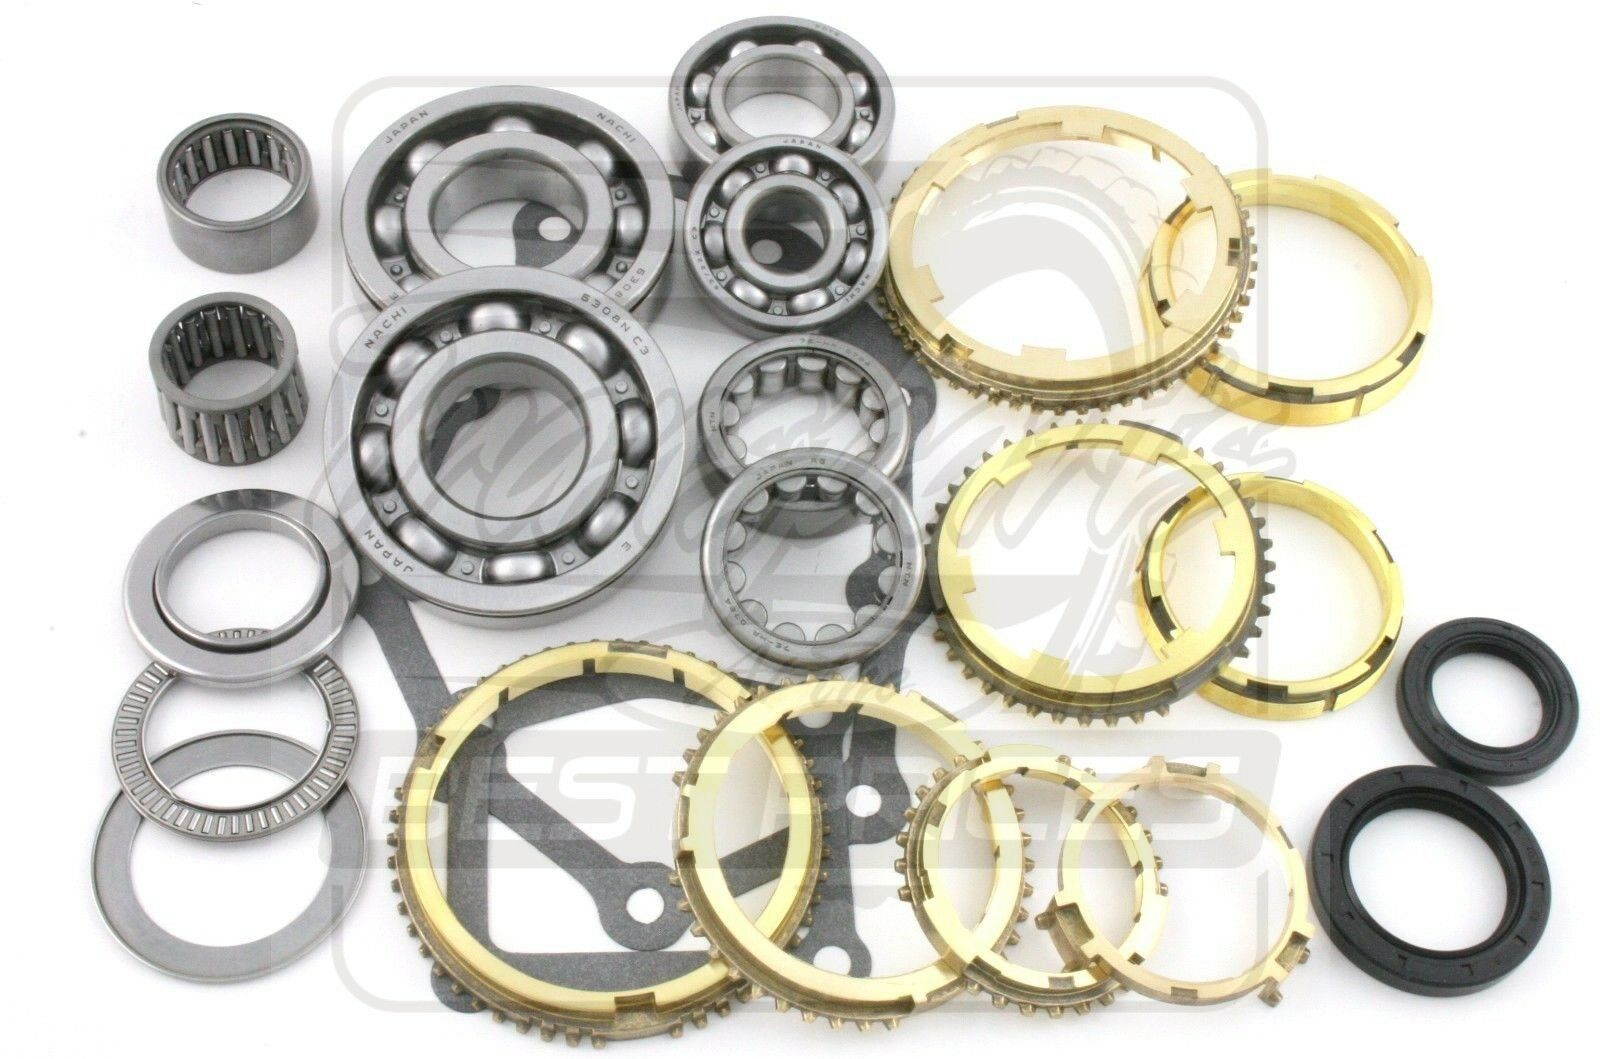 Fits Nissan FS5R30A 300ZX Pathfinder D21 Truck Transmission Rebuild Kit 6  Cyl 1 of 1 See More